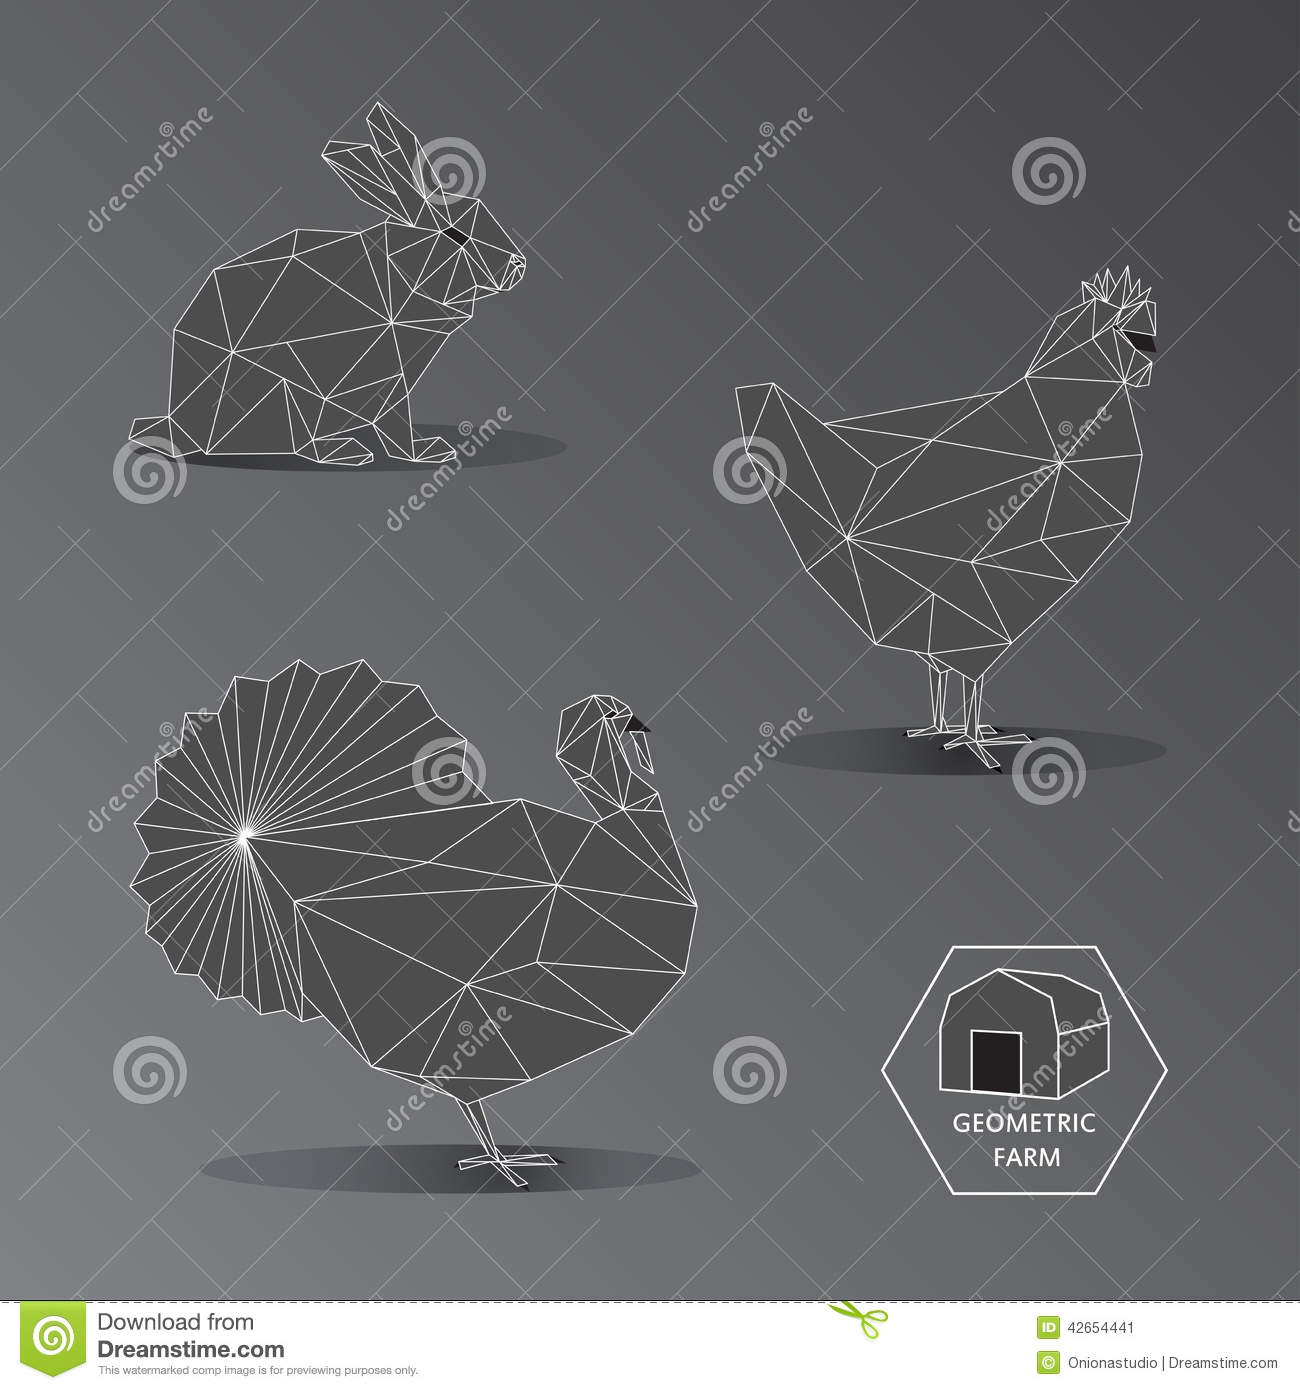 Image result for geometric configuration of animals